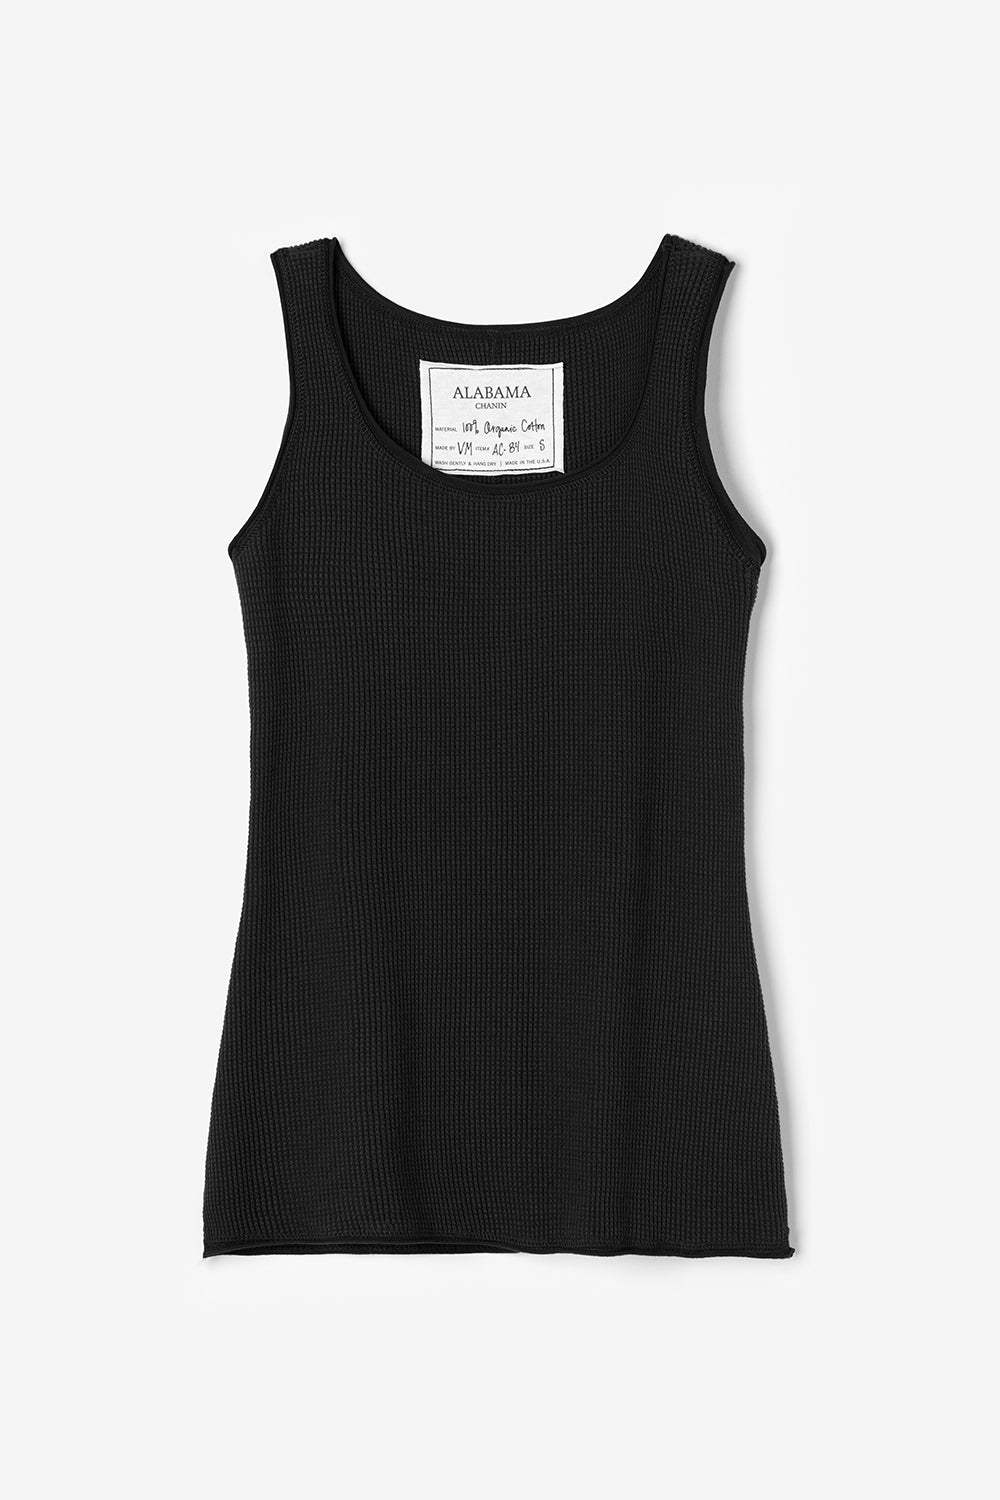 Alabama Chanin The Tank Sleeveless Waffle Knit Black Top